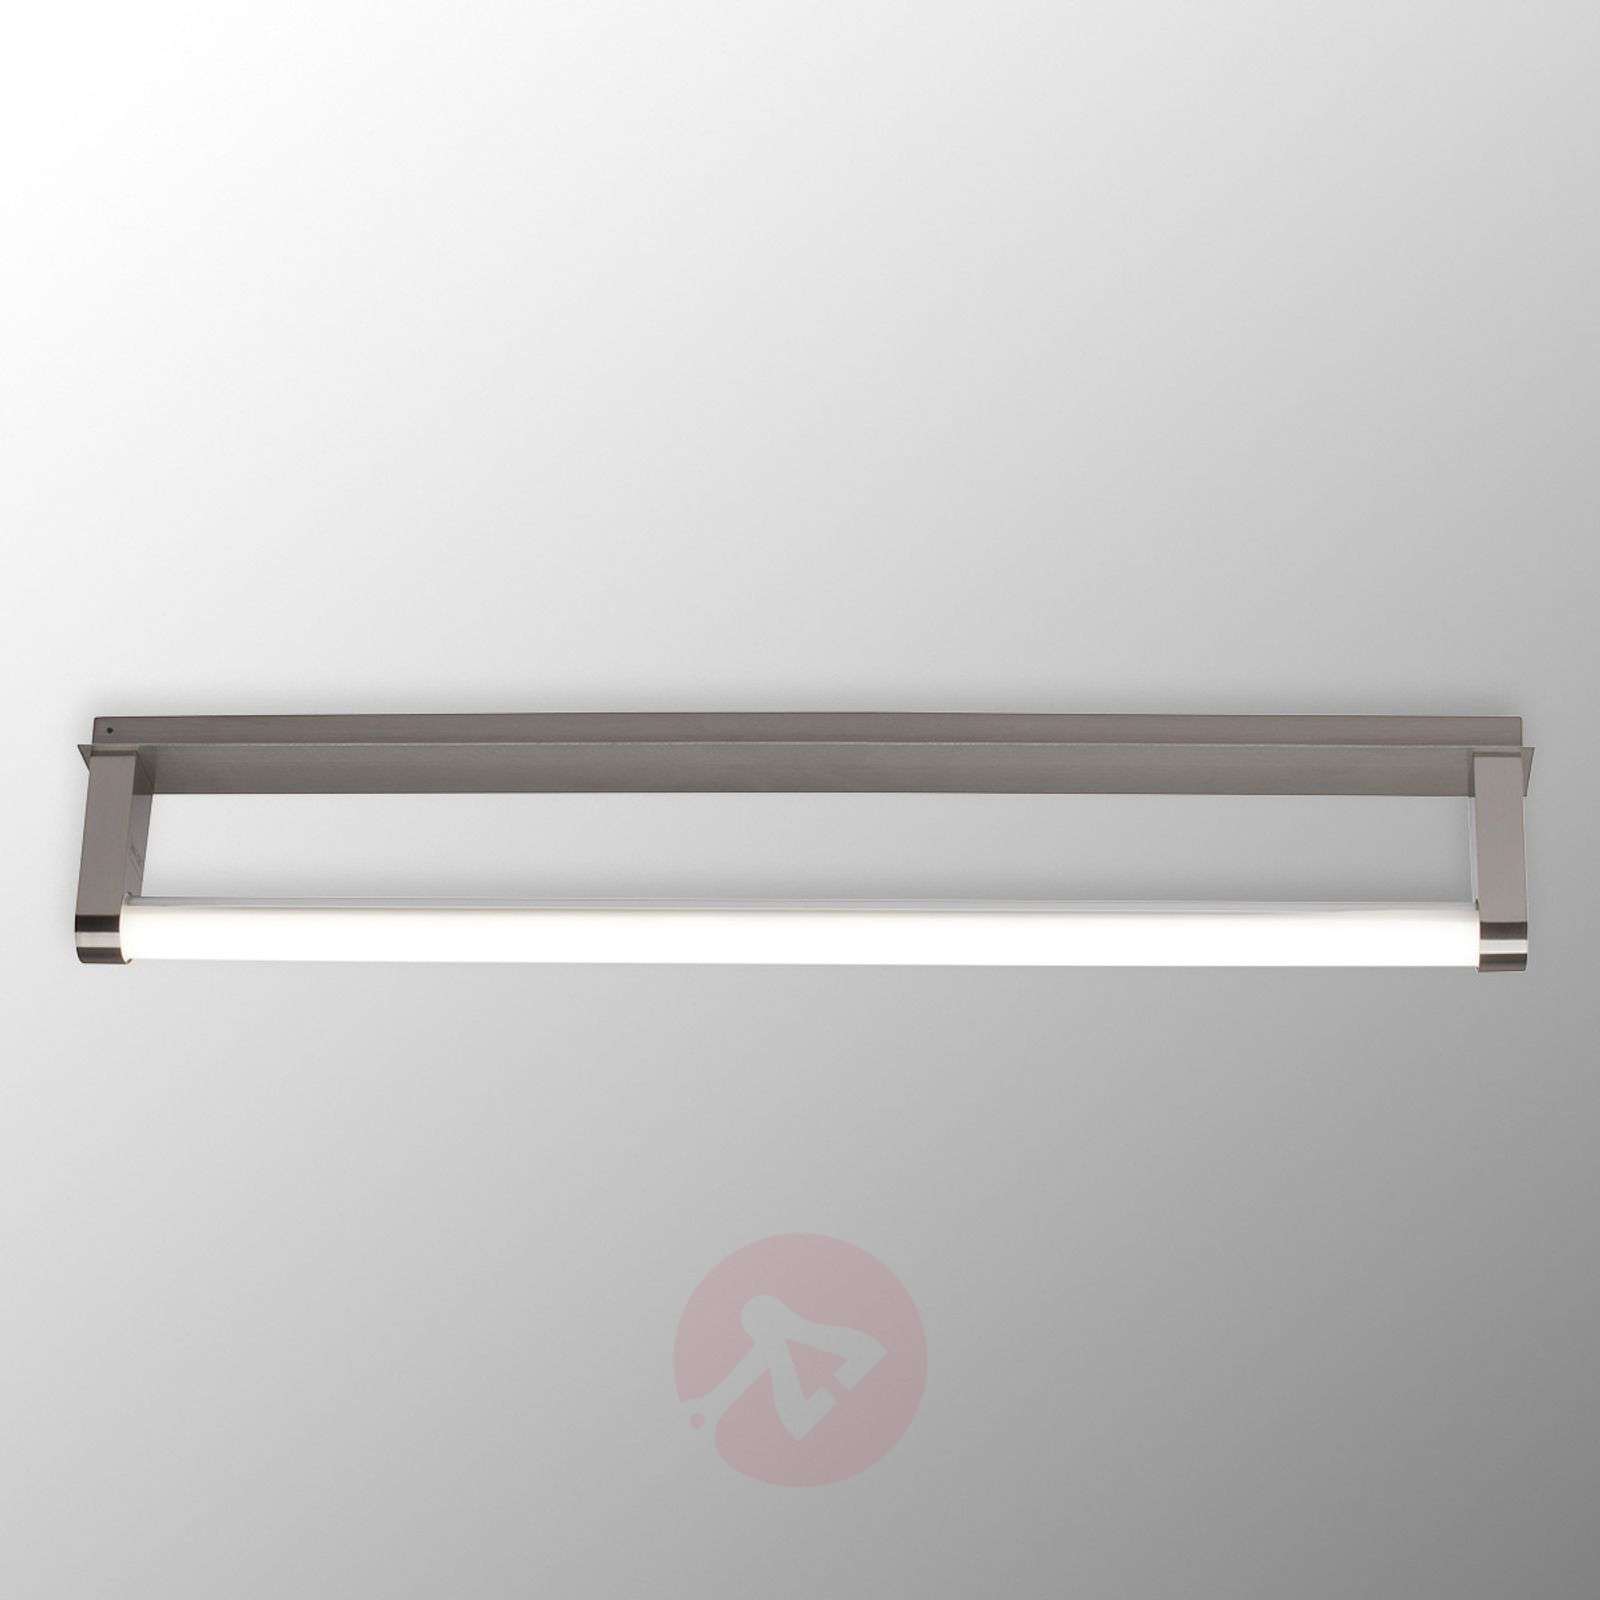 Use an led ceiling light with a rotatable tube lights use an led ceiling light with a rotatable tube 1508956 01 mozeypictures Choice Image